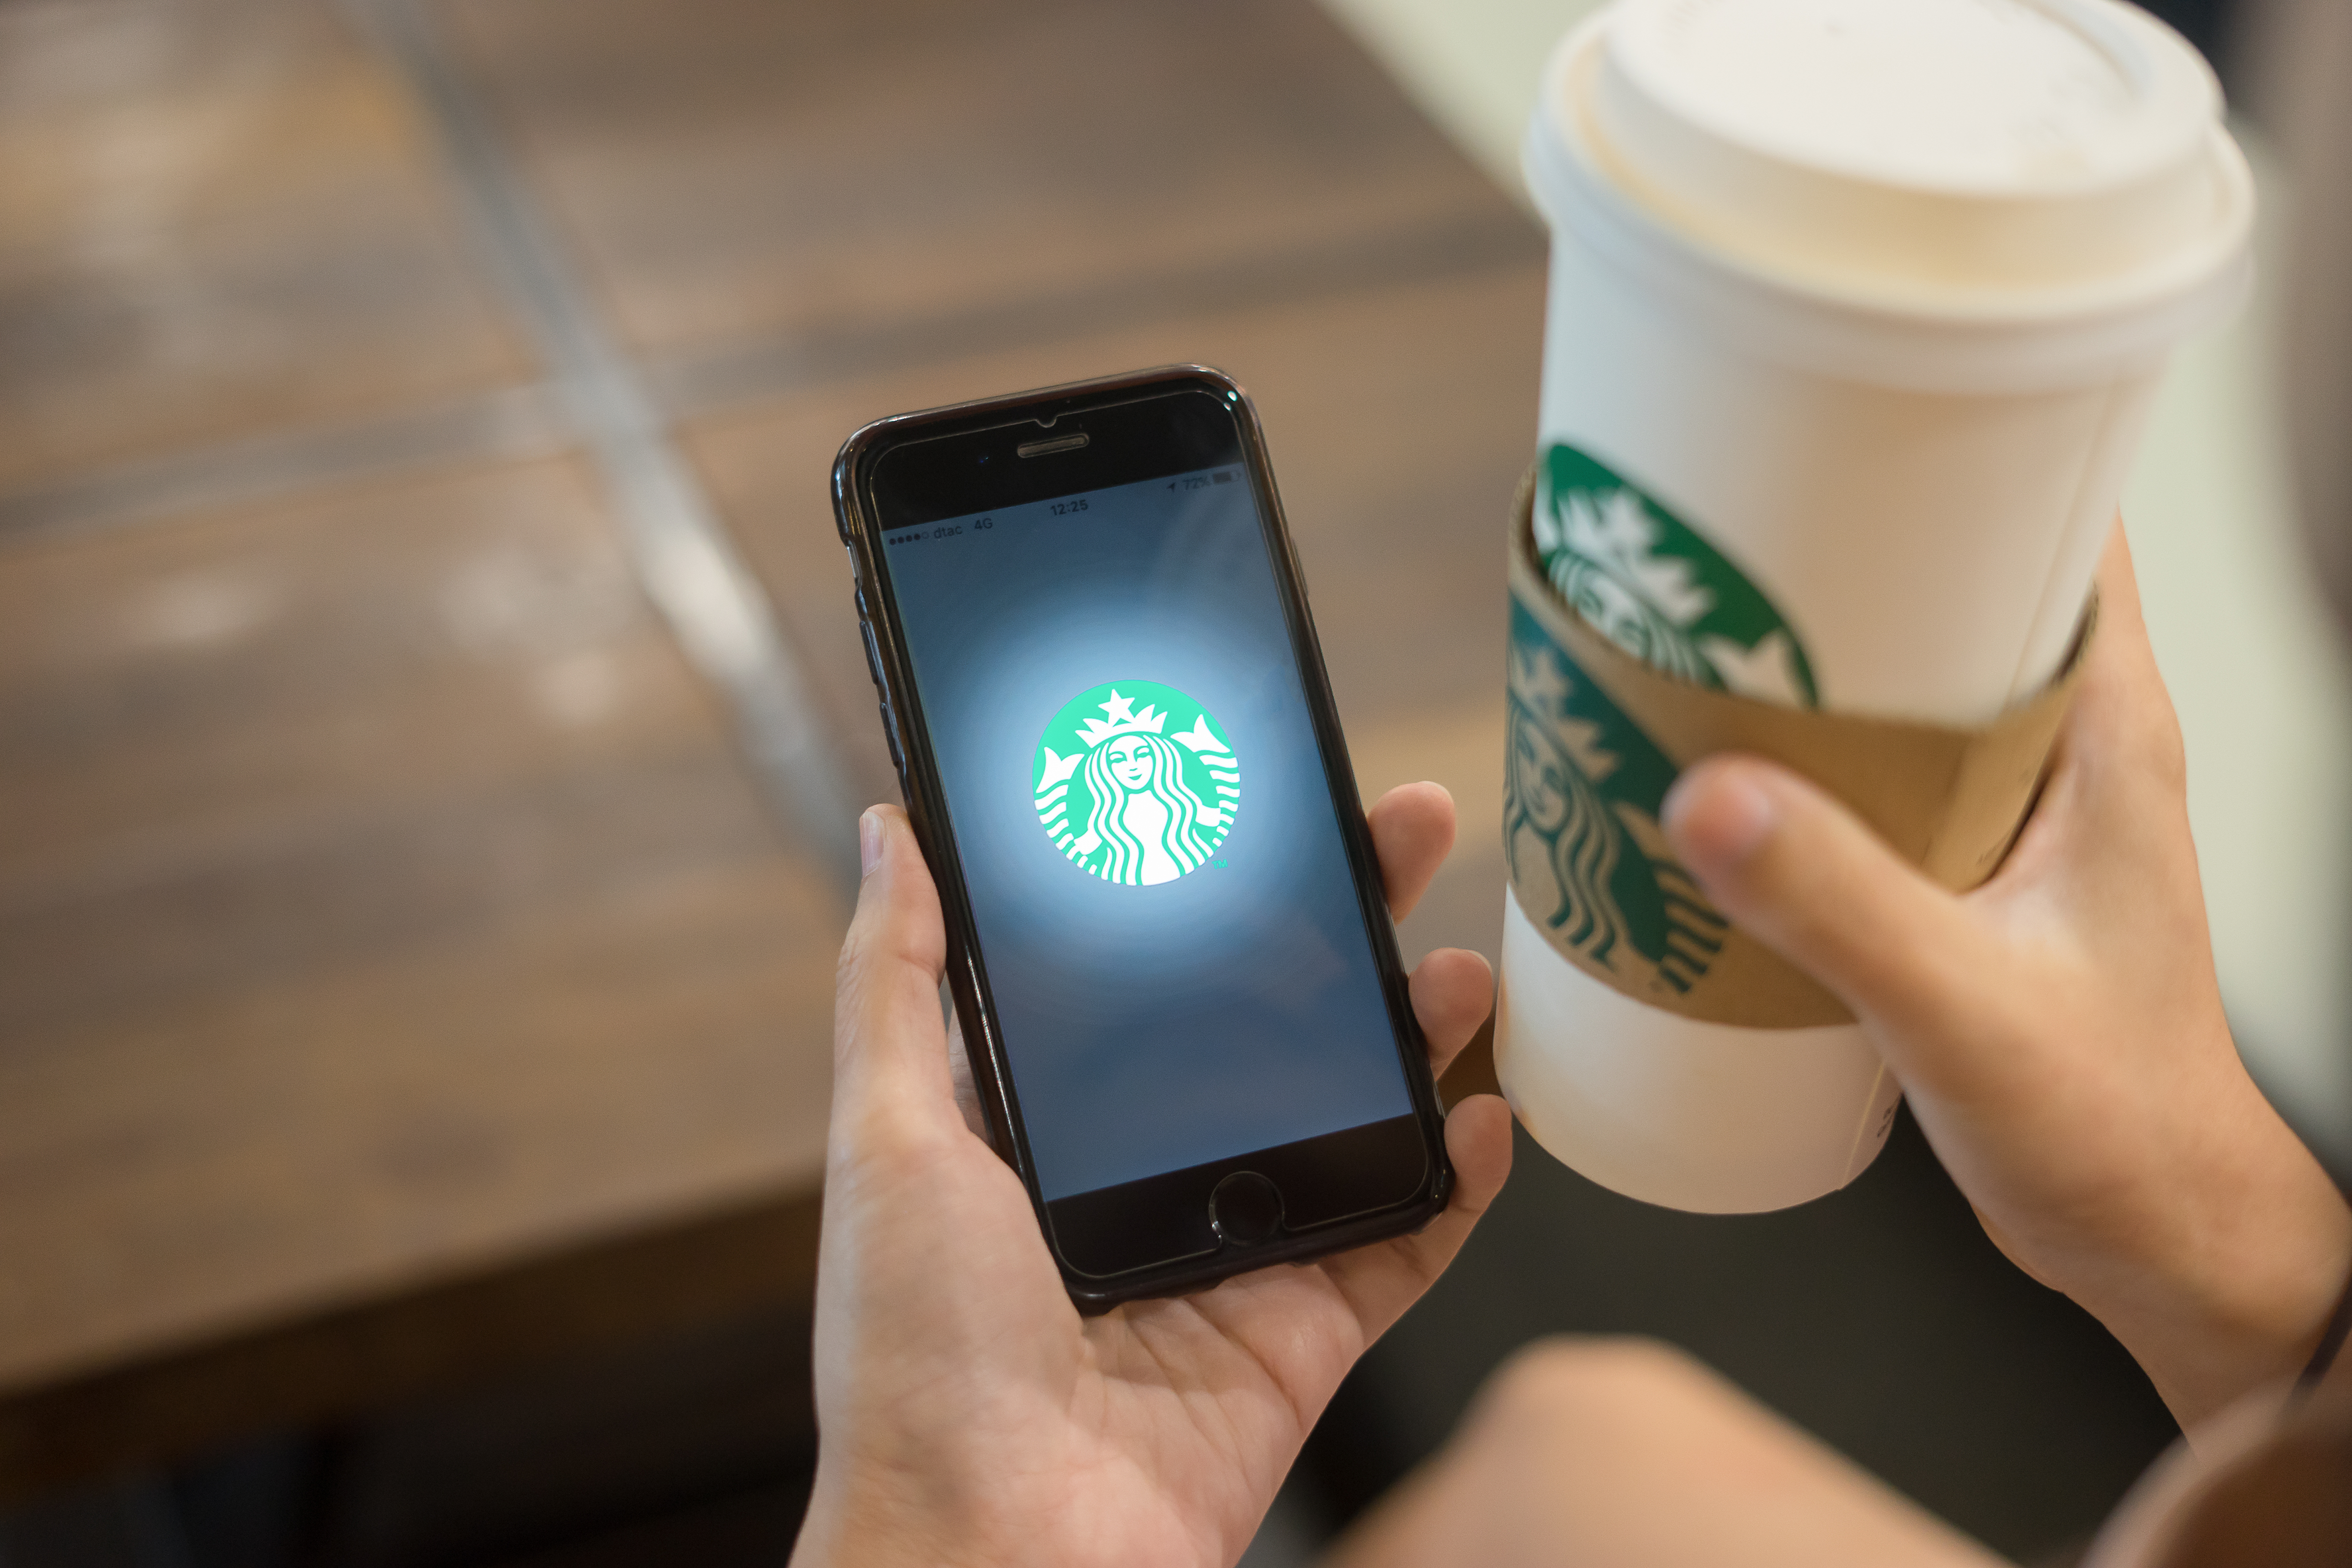 Starbucks cup and a hand holding a phone with the Starbucks app.